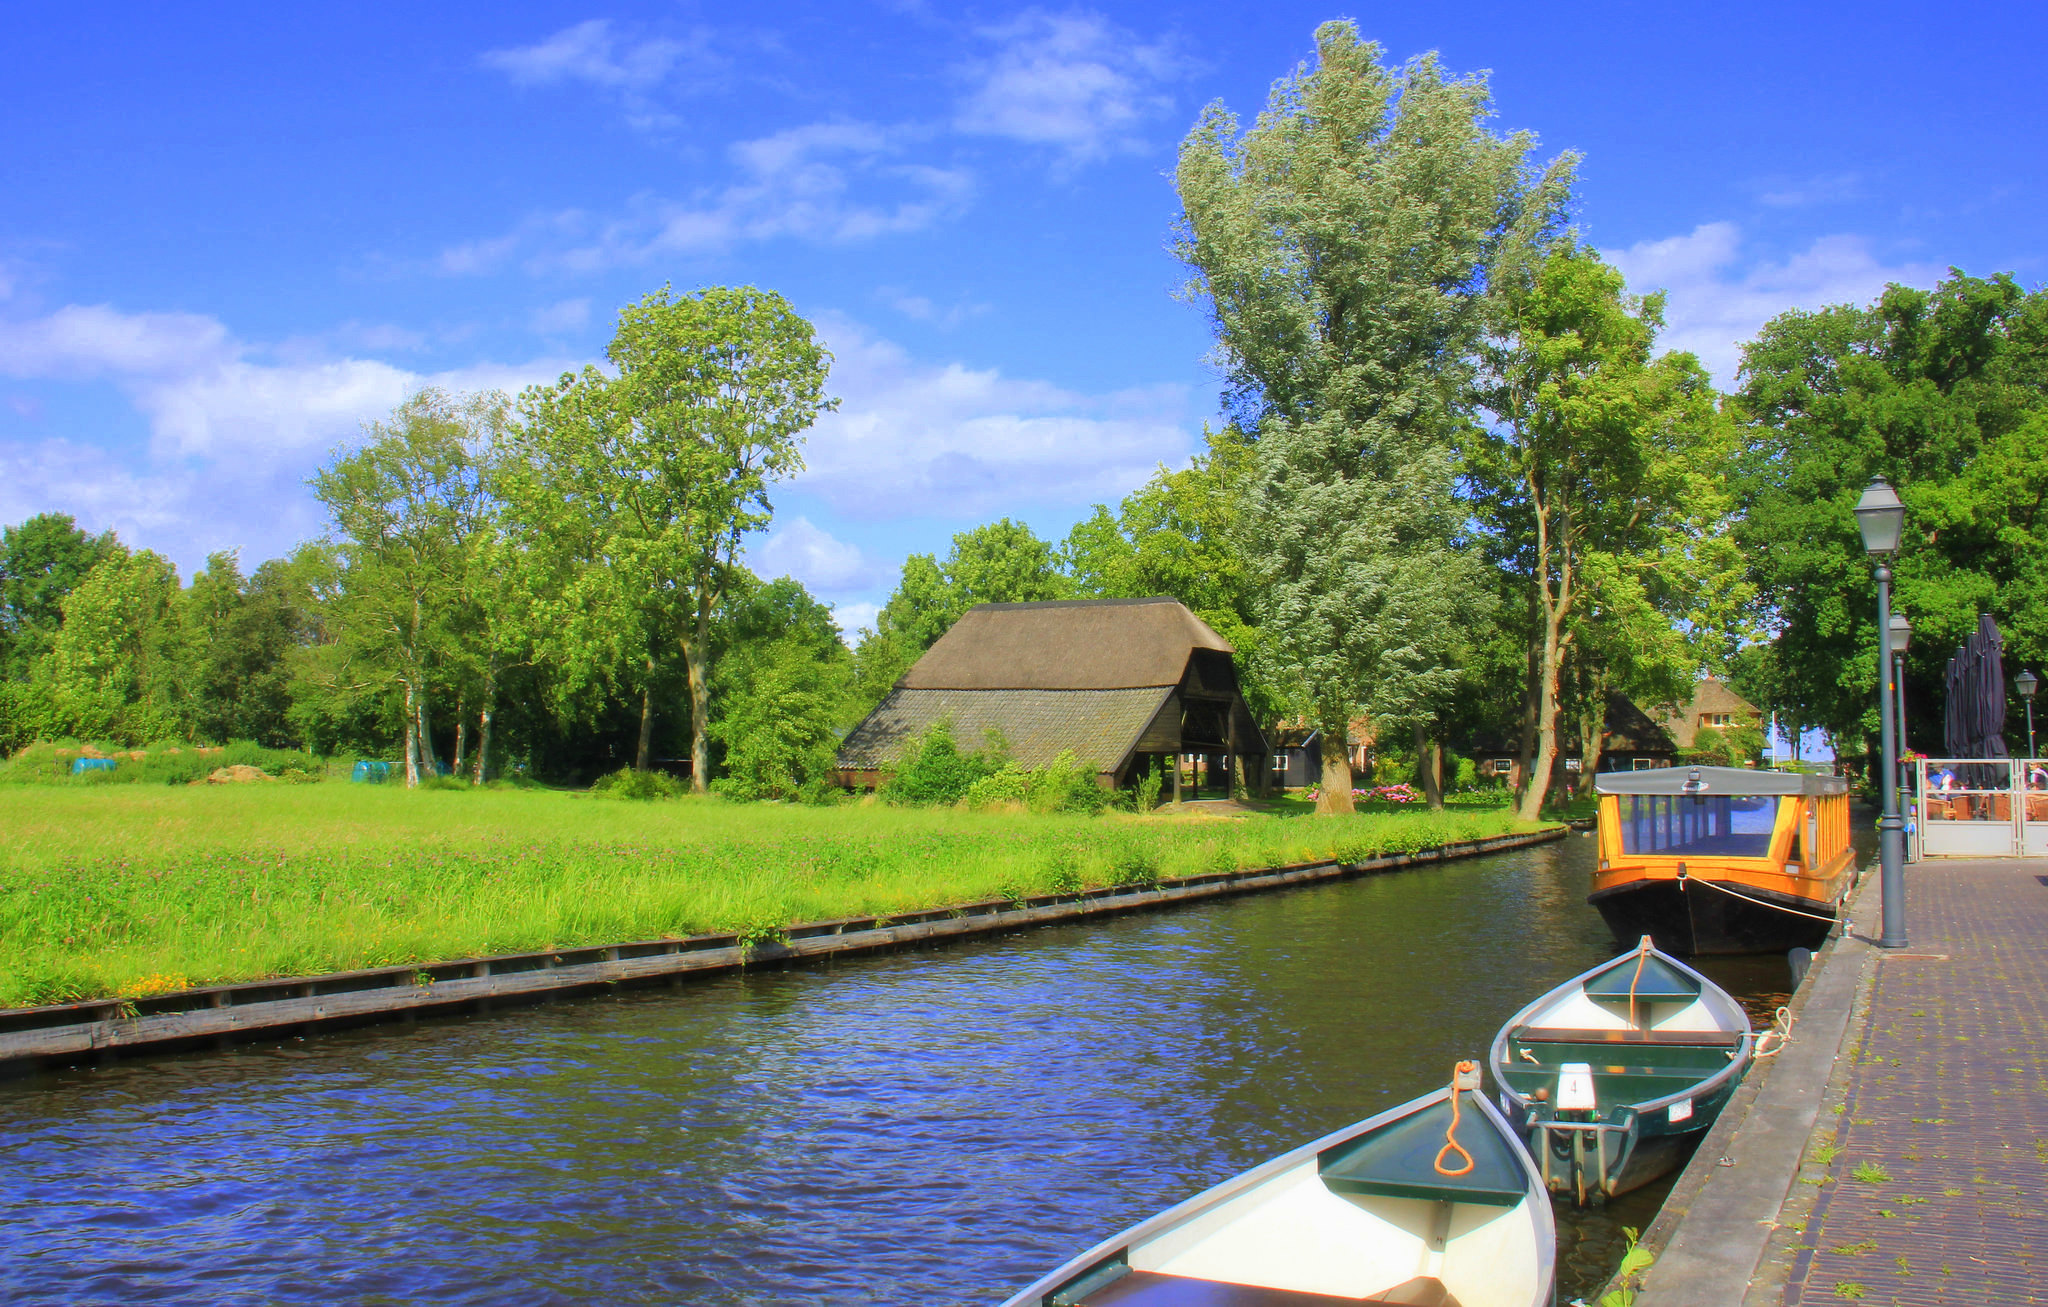 Boats are used for transportation in Giethoorn